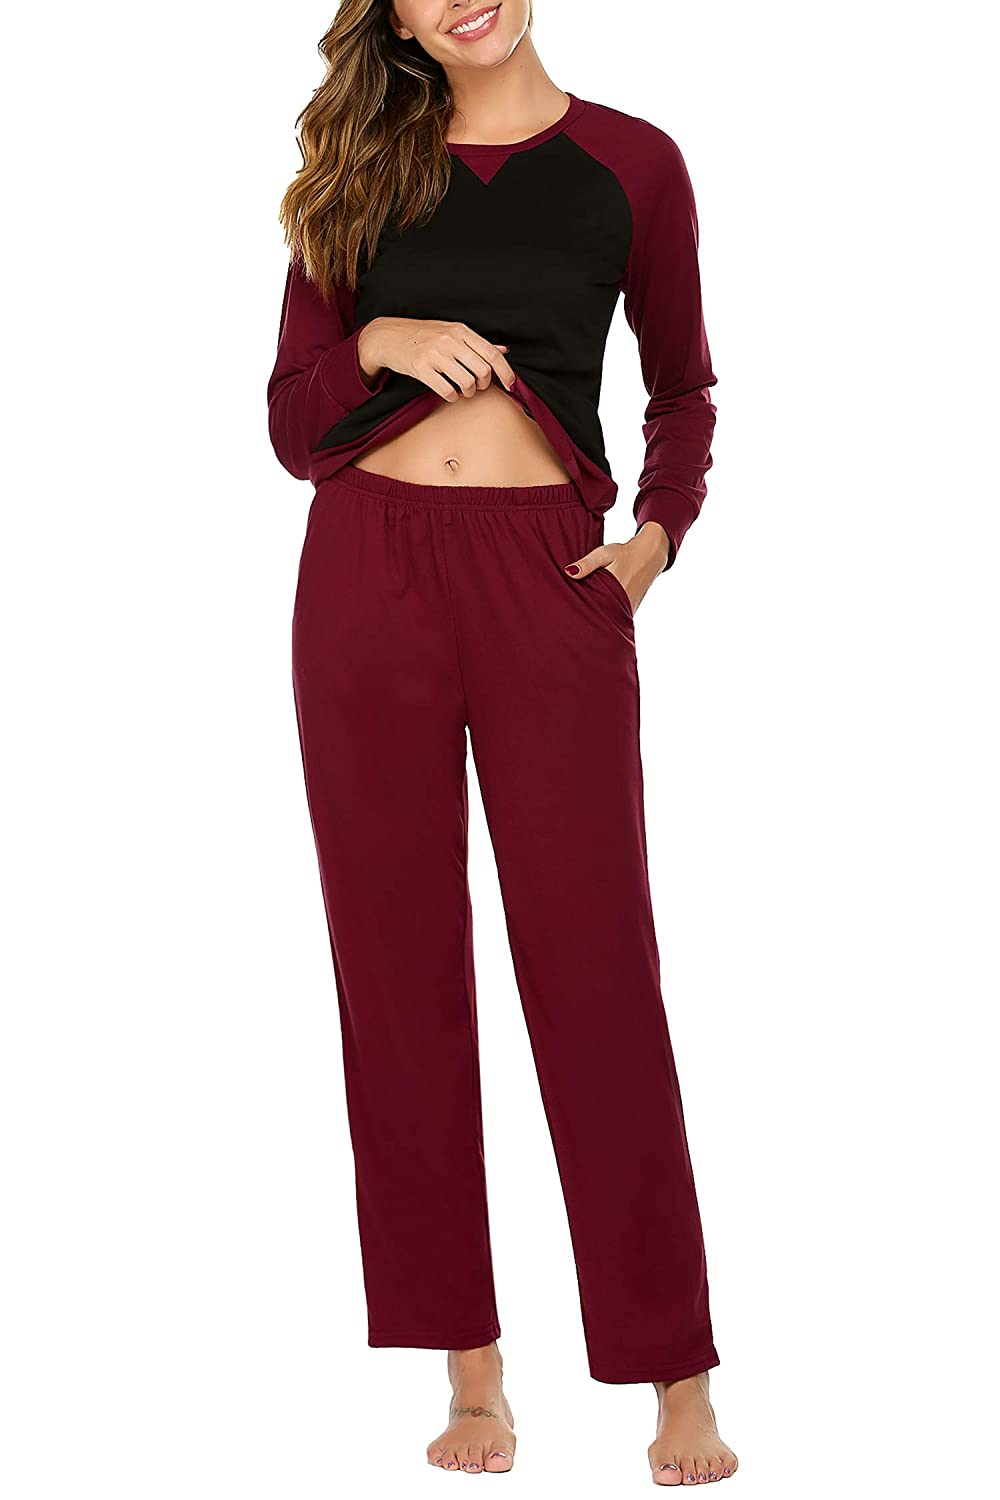 Ekouaer Womens Pajama Set Long Sleeve Pajama Soft Sleepwear Tops and Pants Pj Set